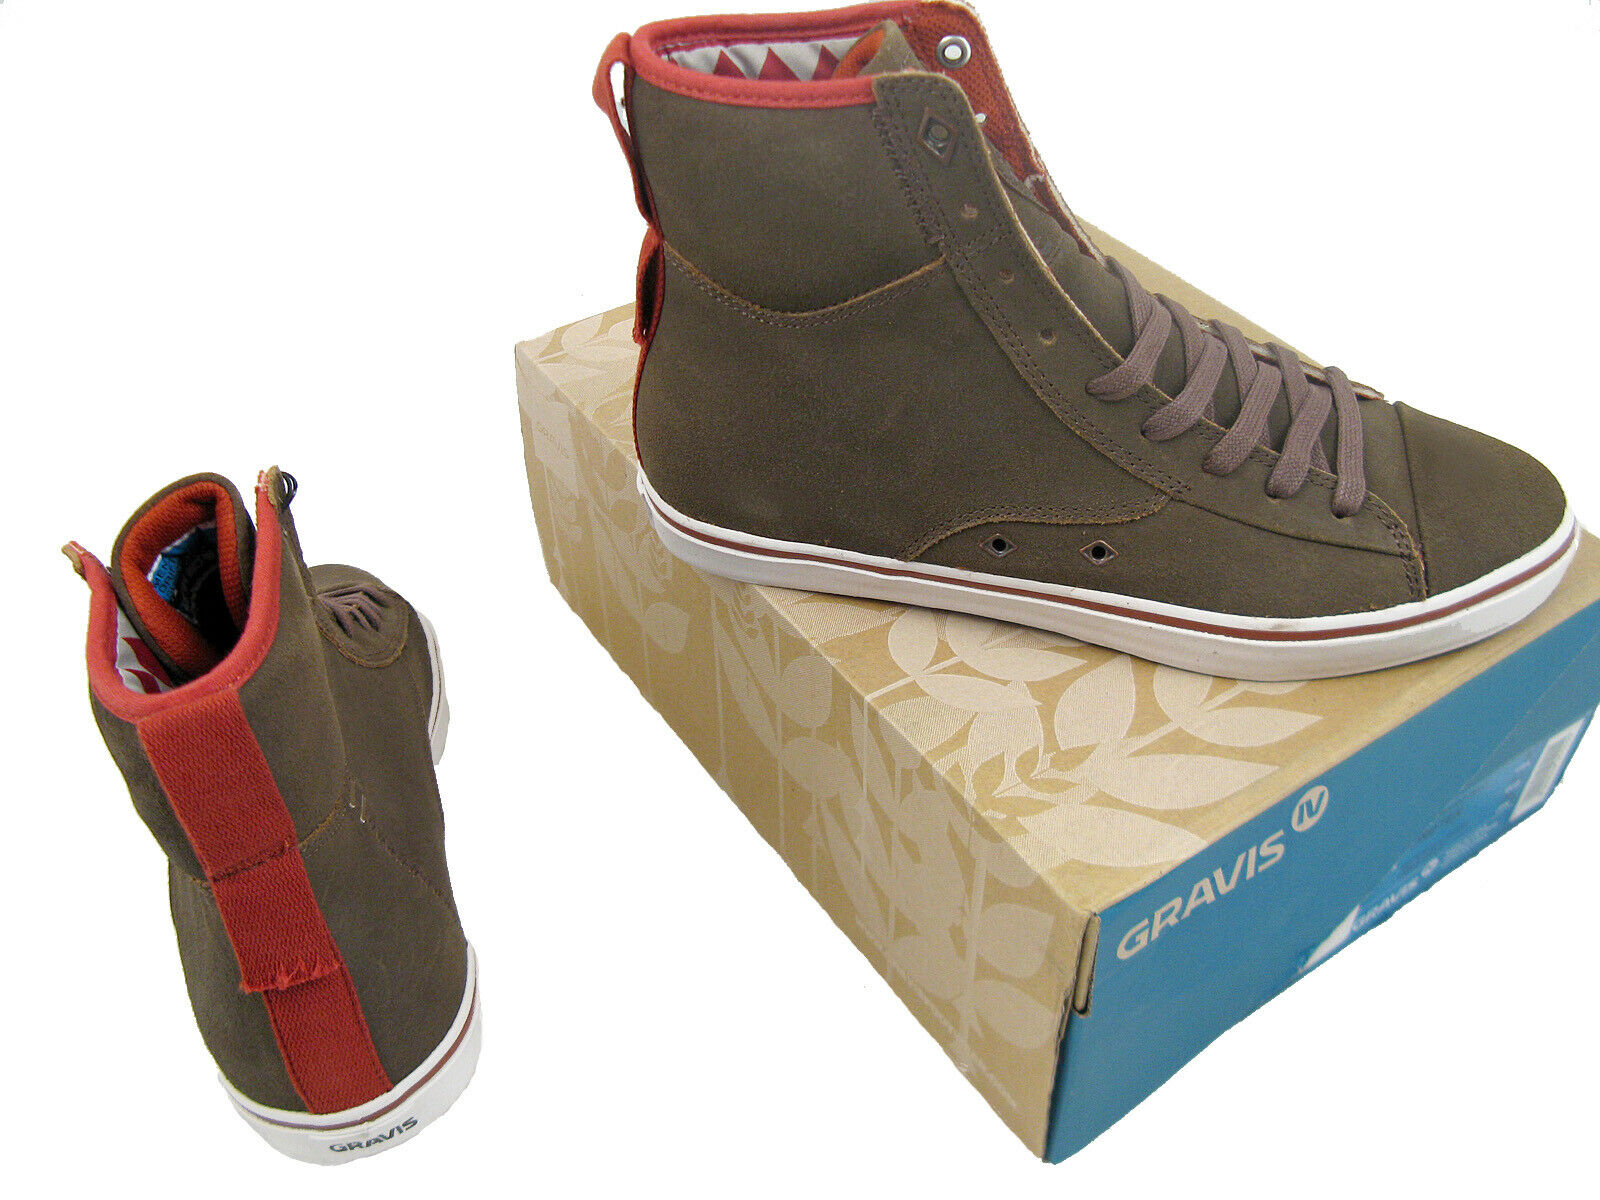 NEW Gravis by Burton Snowboards Hi Top Sneakers (shoes)   Sold in Japan Only